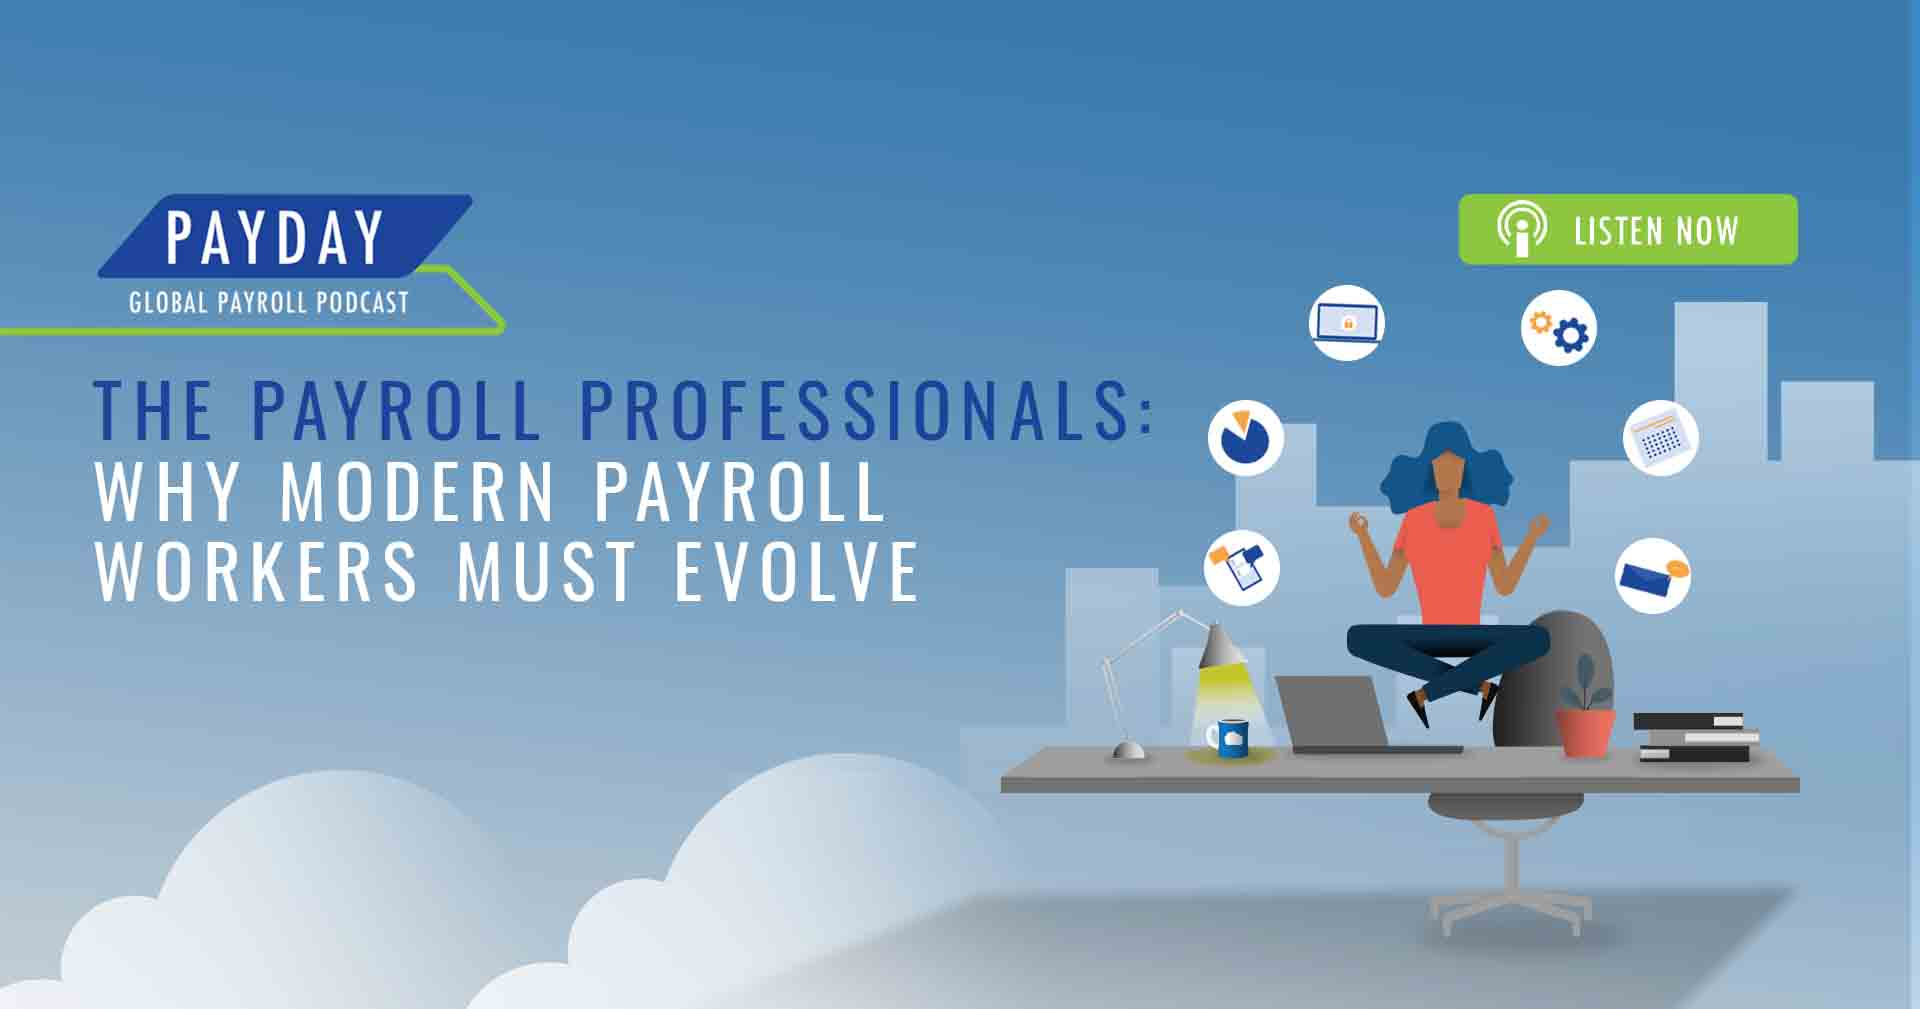 Payroll Professionals: Why Modern Payroll Workers Must Evolve